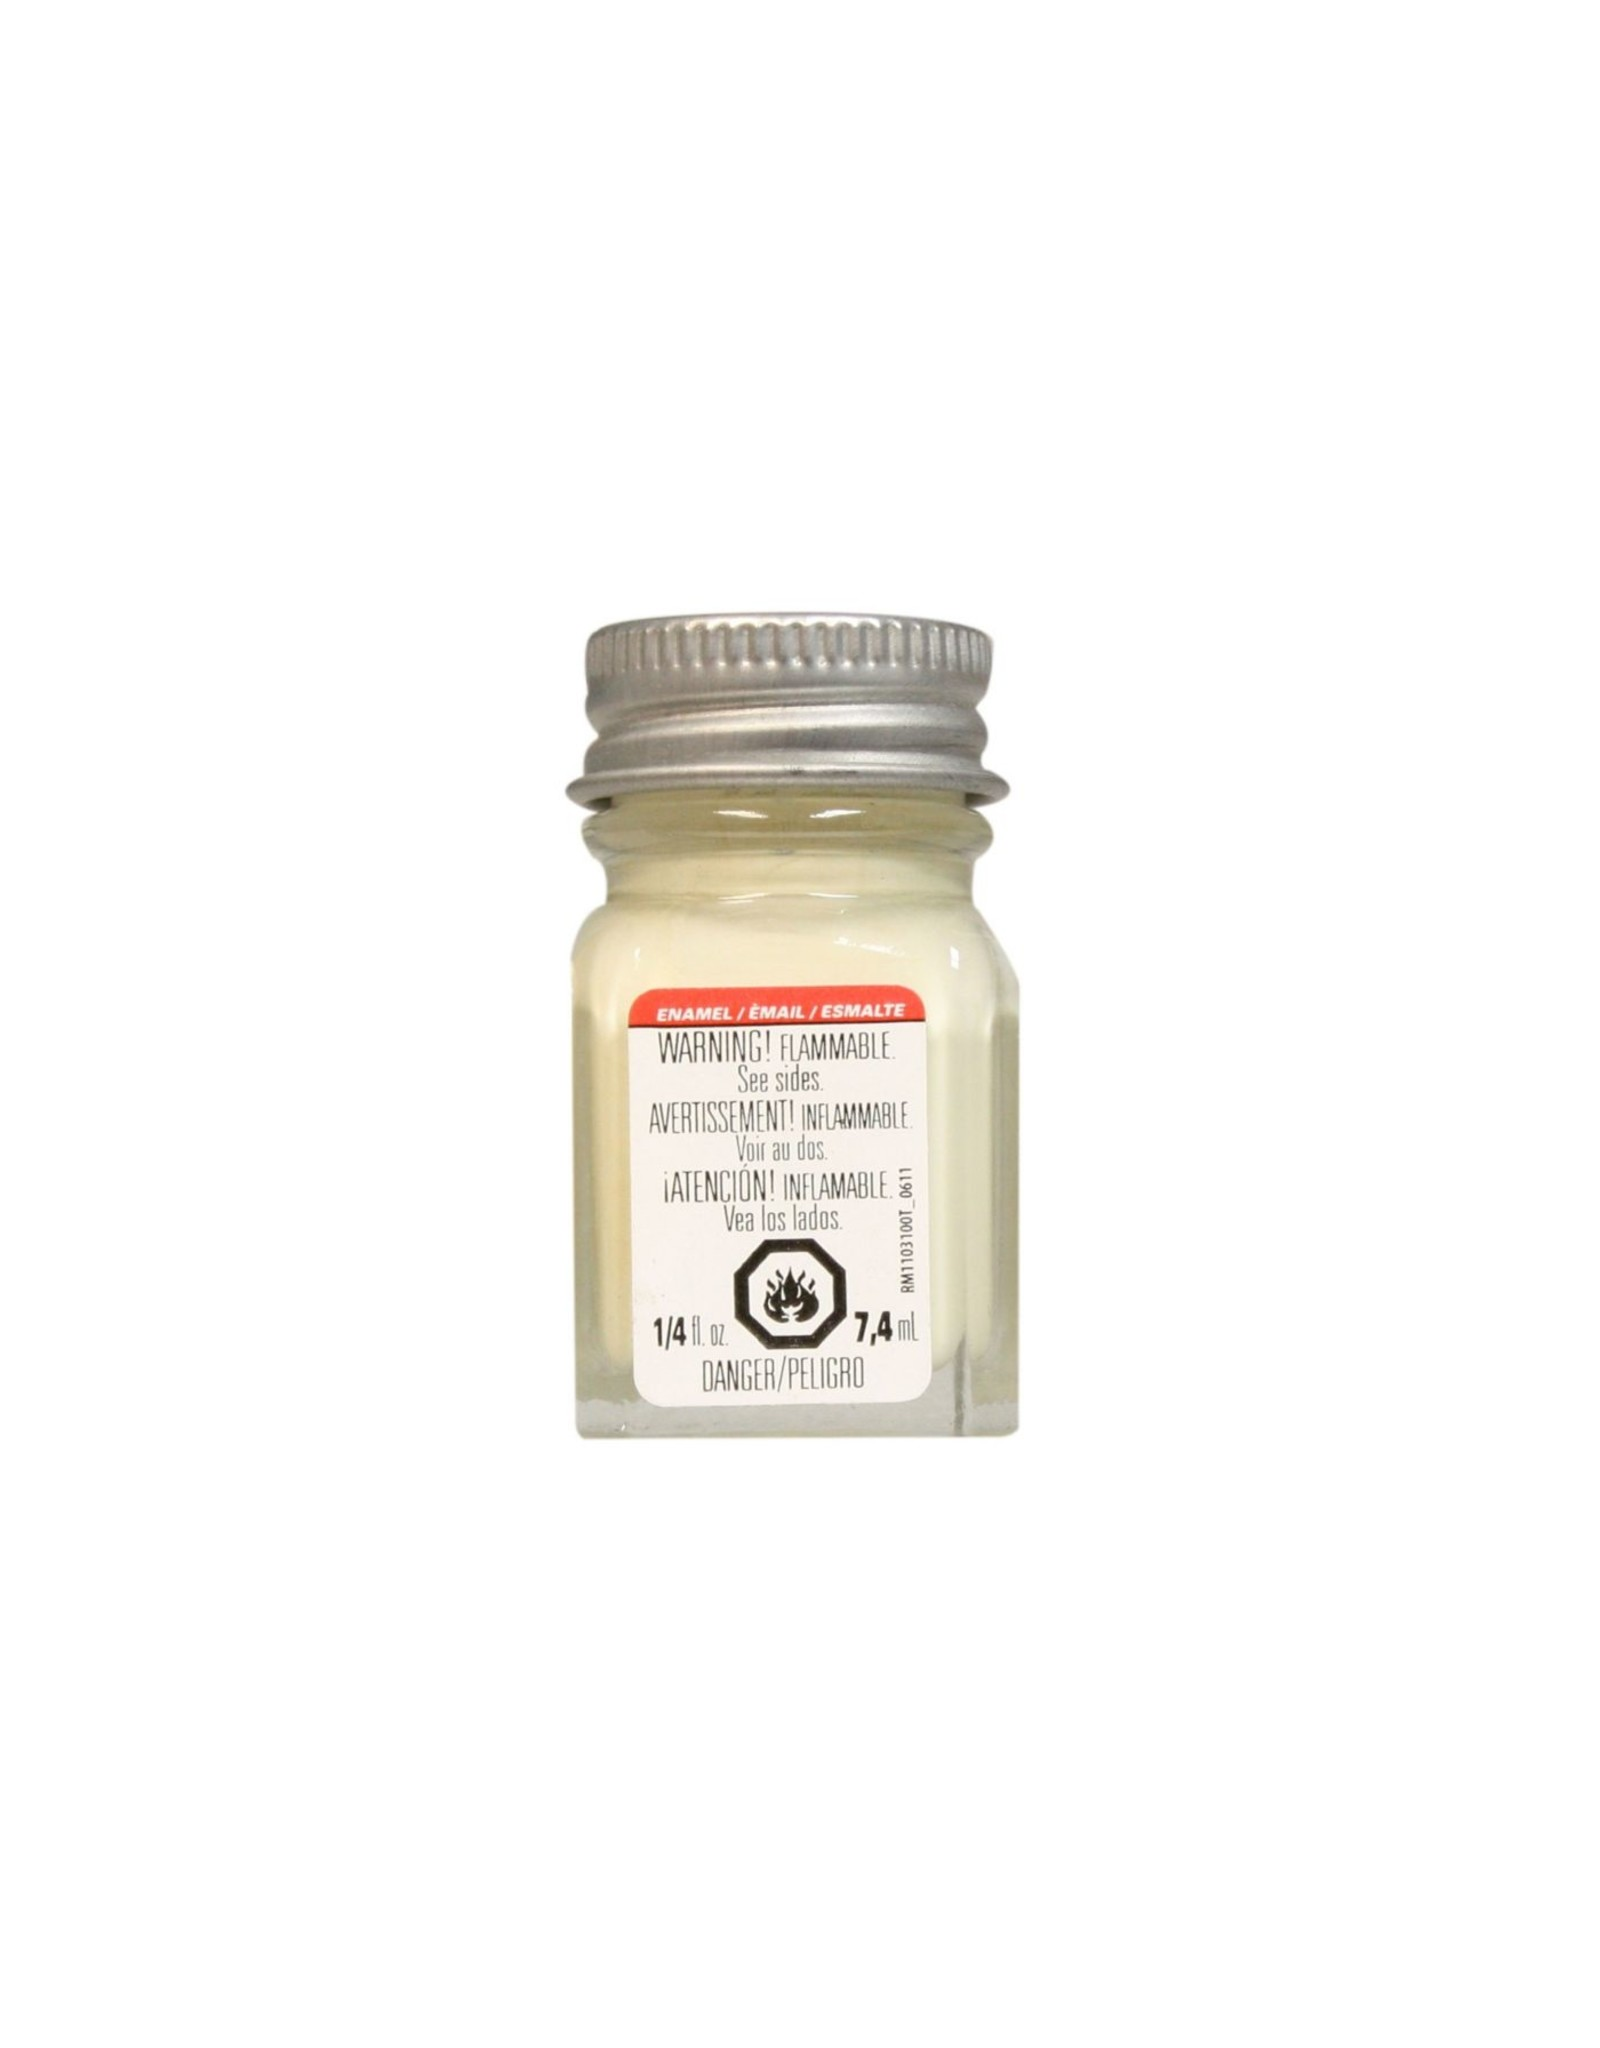 Testors 1117TT - Enamel 1/4 oz - Light Ivory Gloss